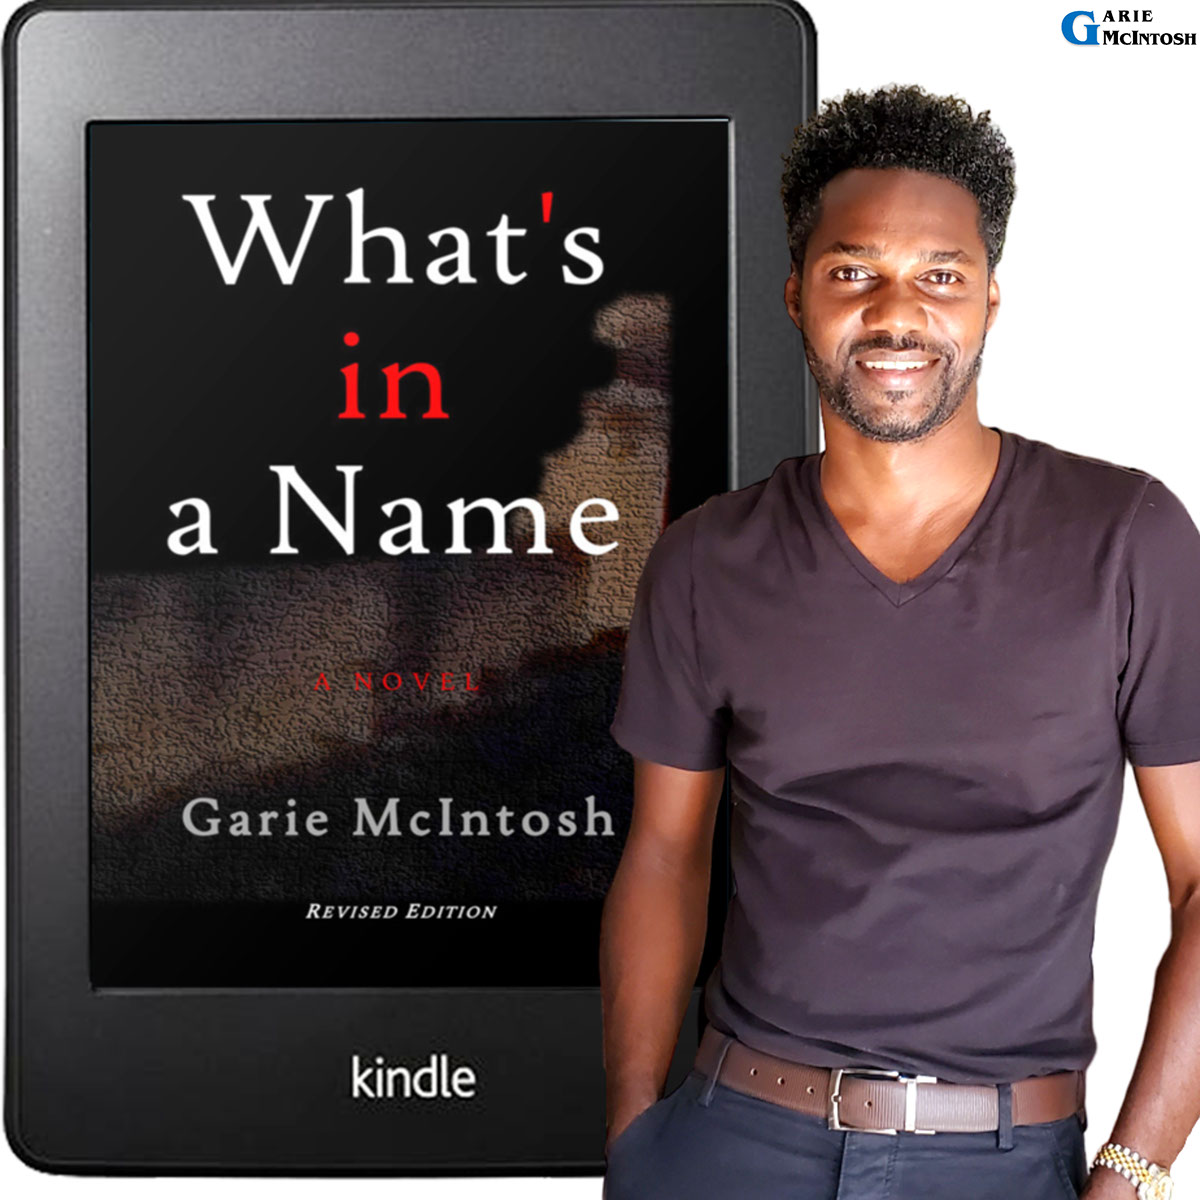 What's in a Name (Kindle edition)